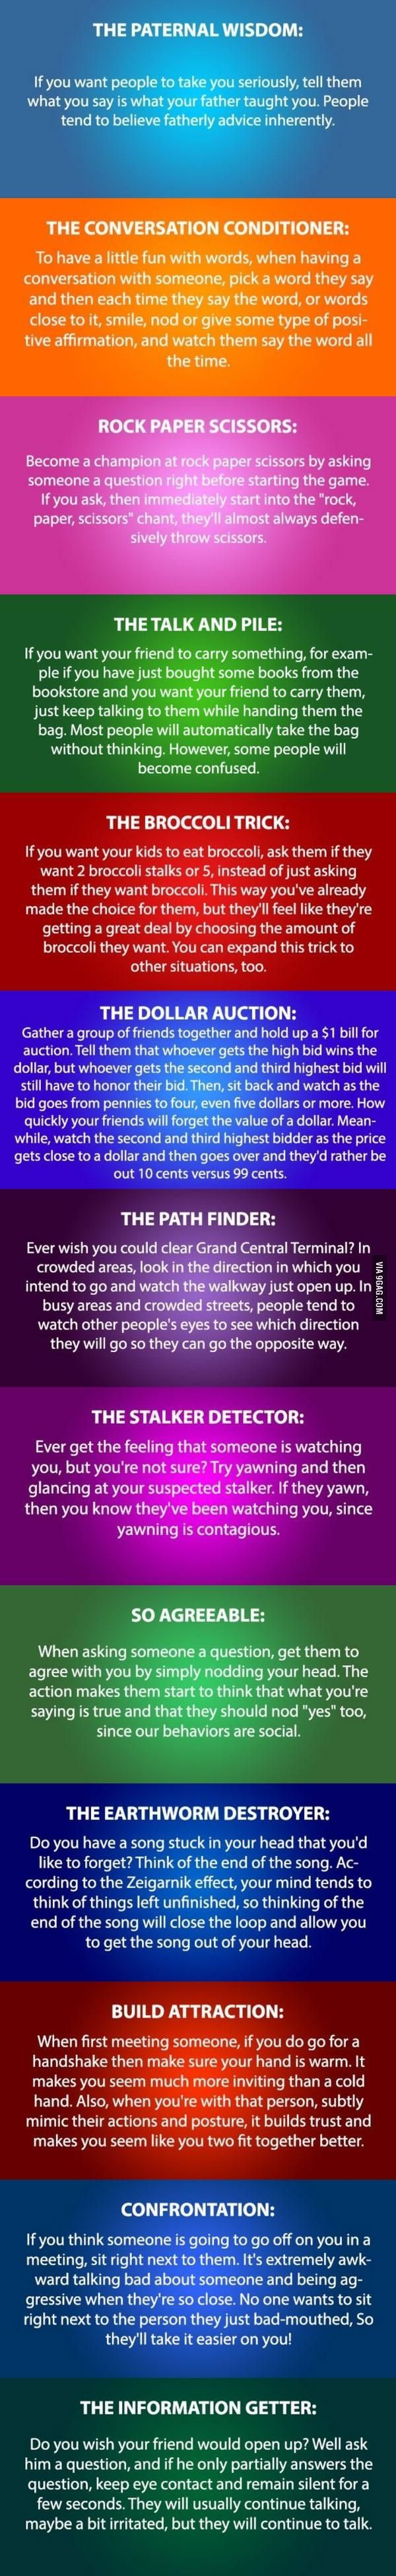 13 Cool Psychology Tricks You Need To Try | DailyFailCenter